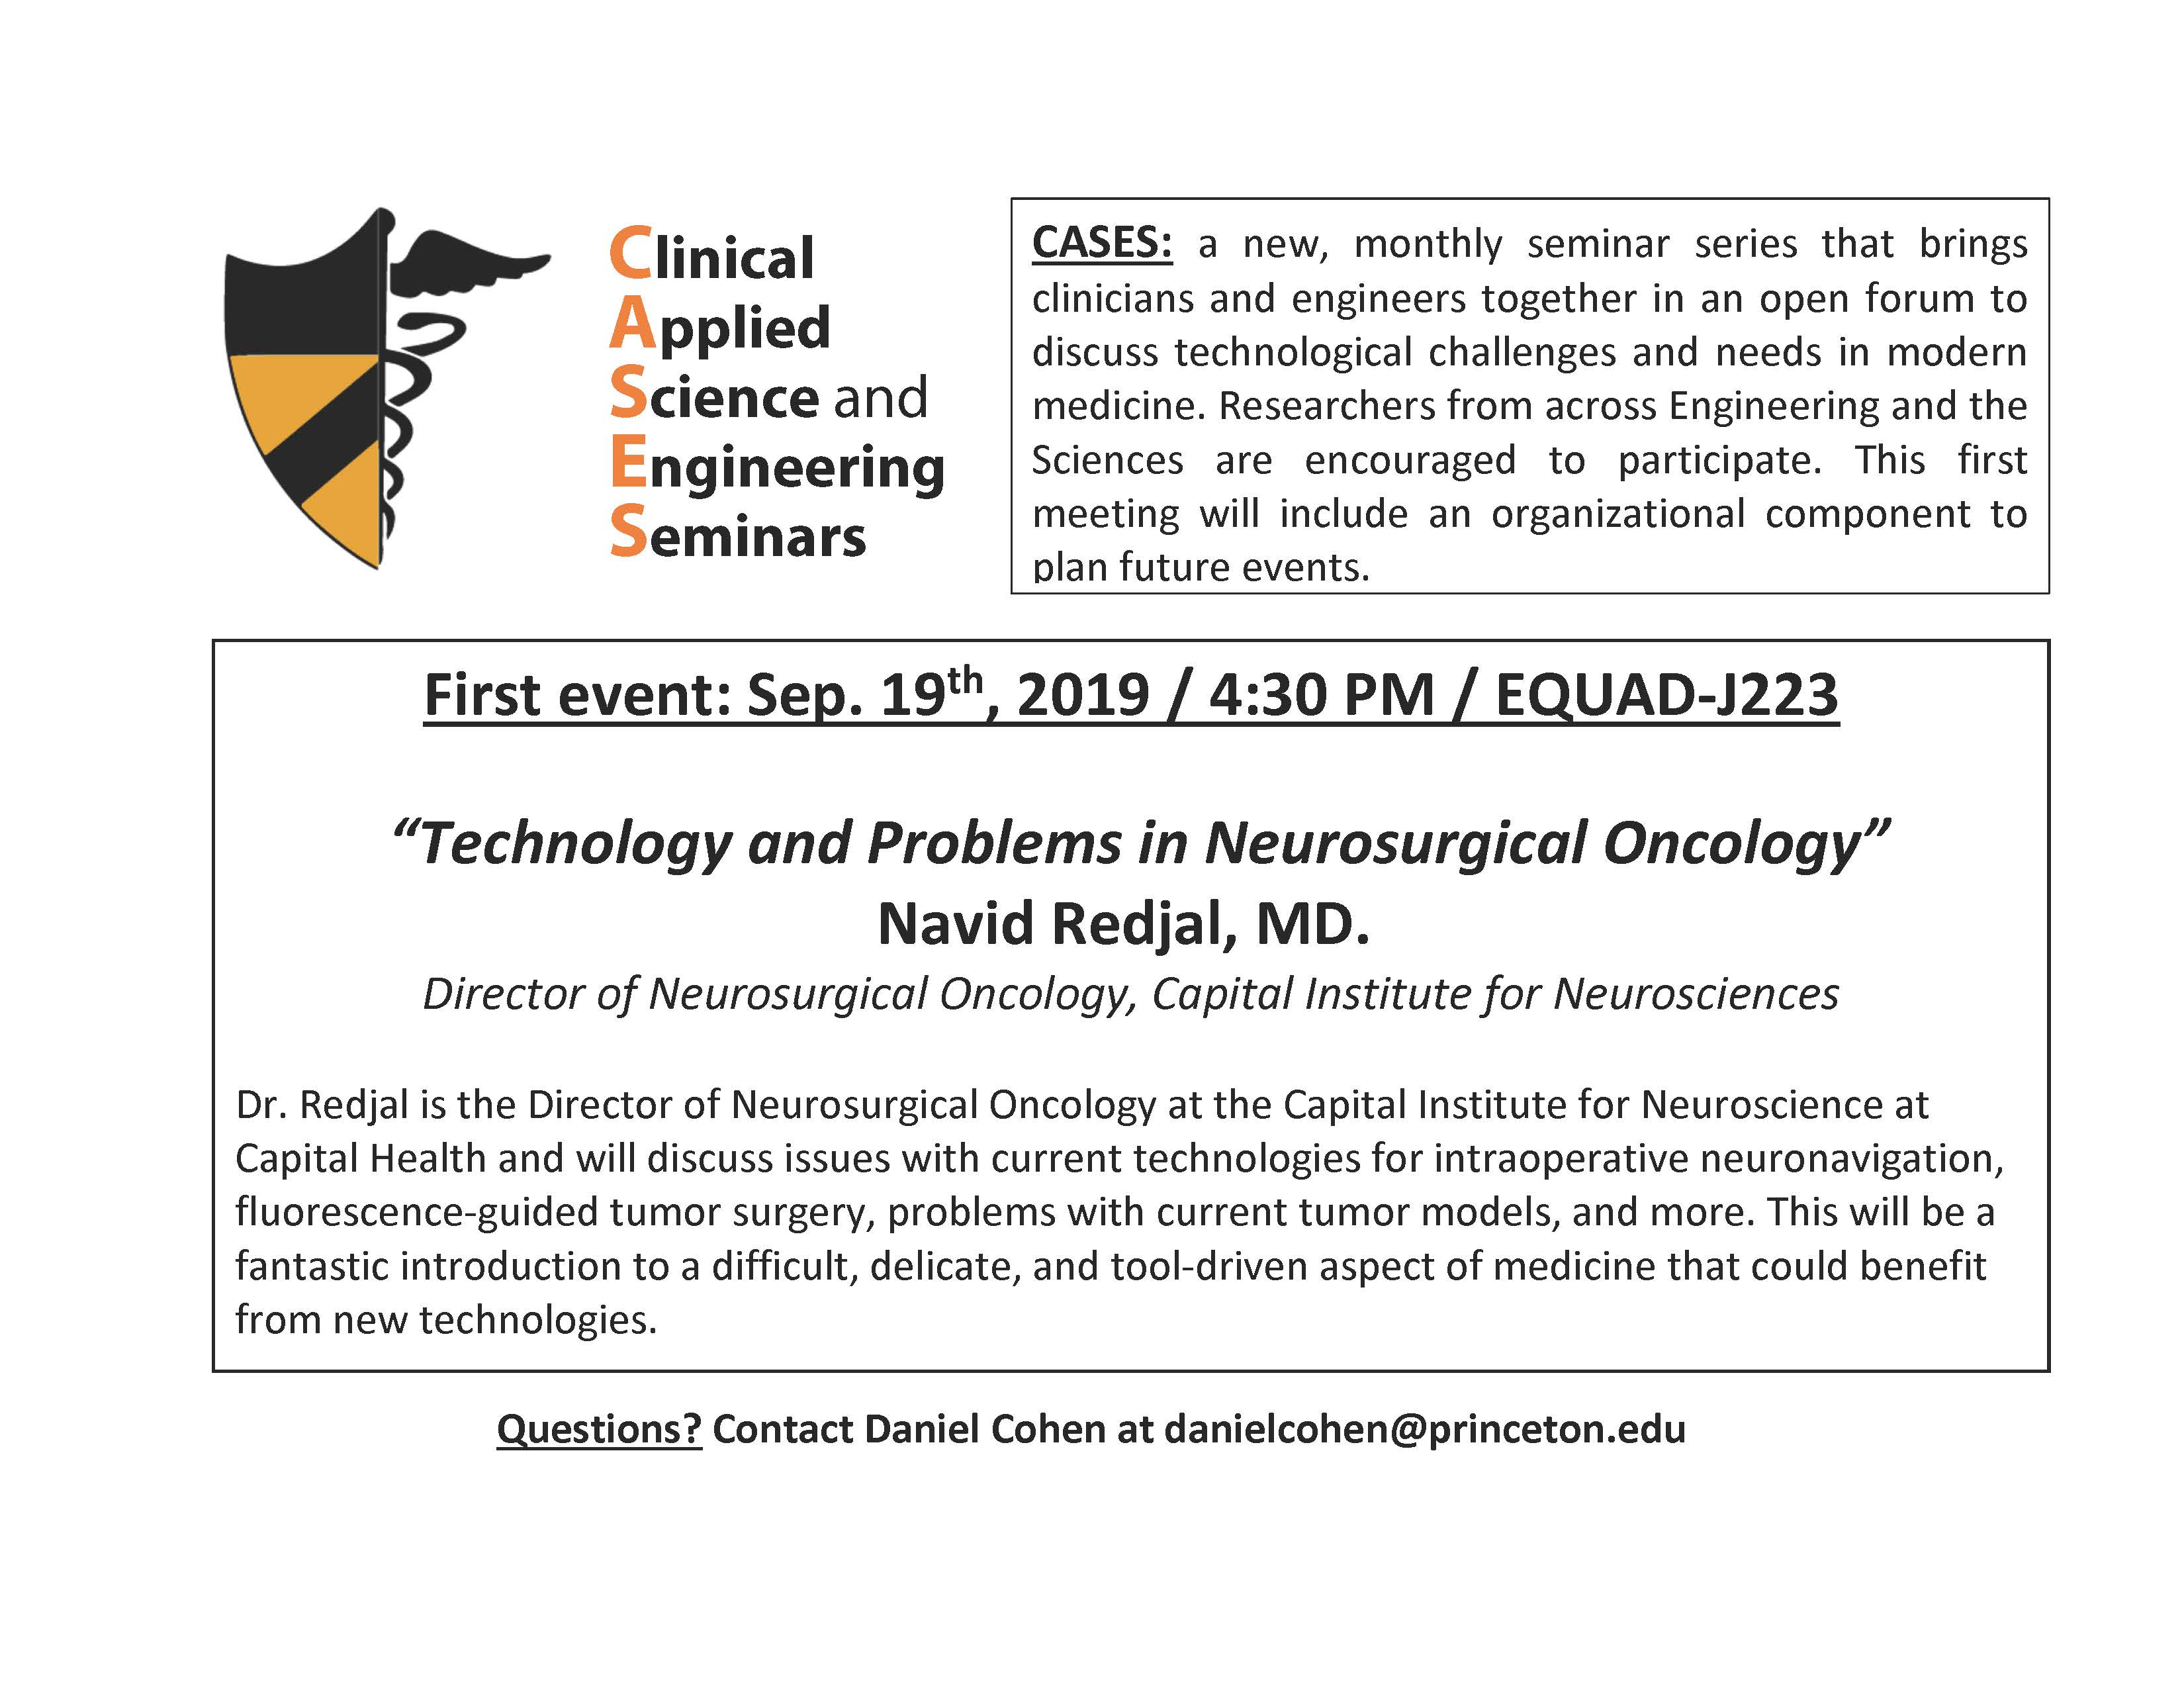 CASES: Technology and Problems in Neurosurgical Oncology